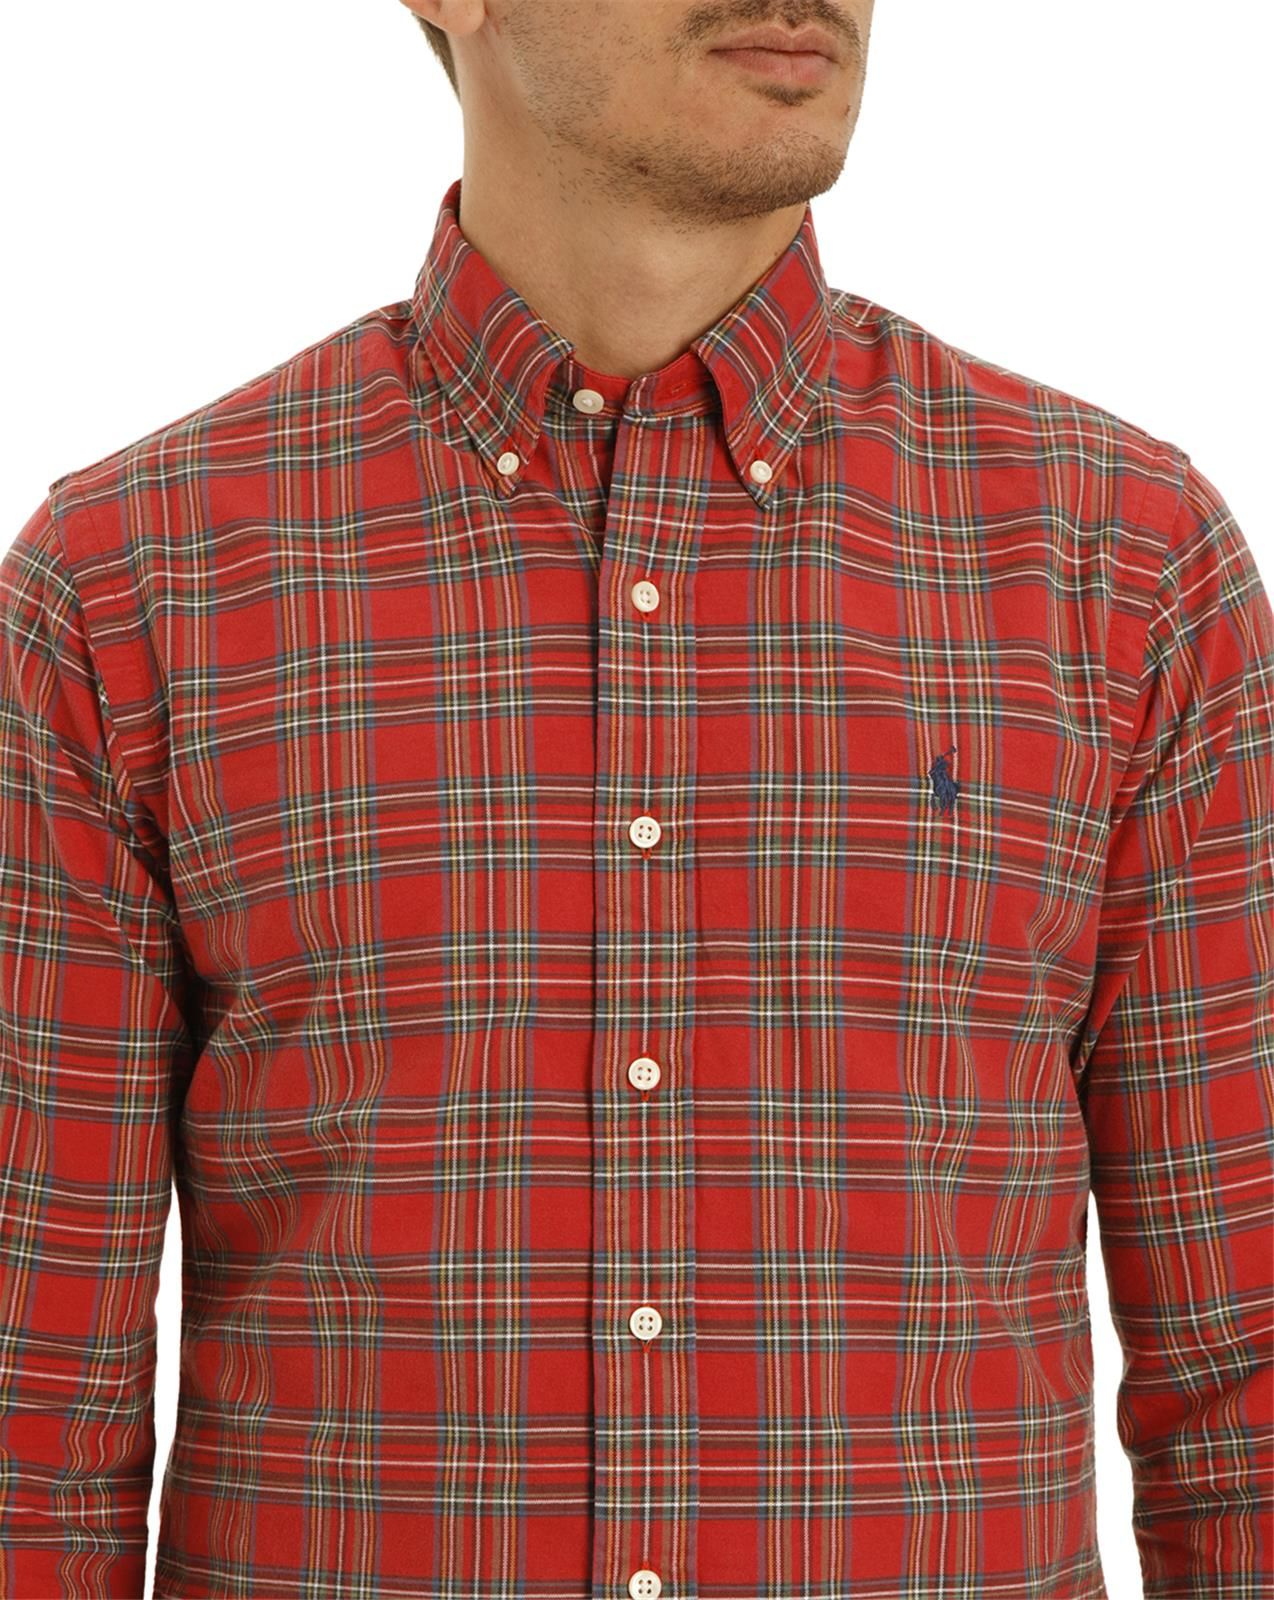 Polo ralph lauren slim fit oxford red and green checked for Red and green checked shirt